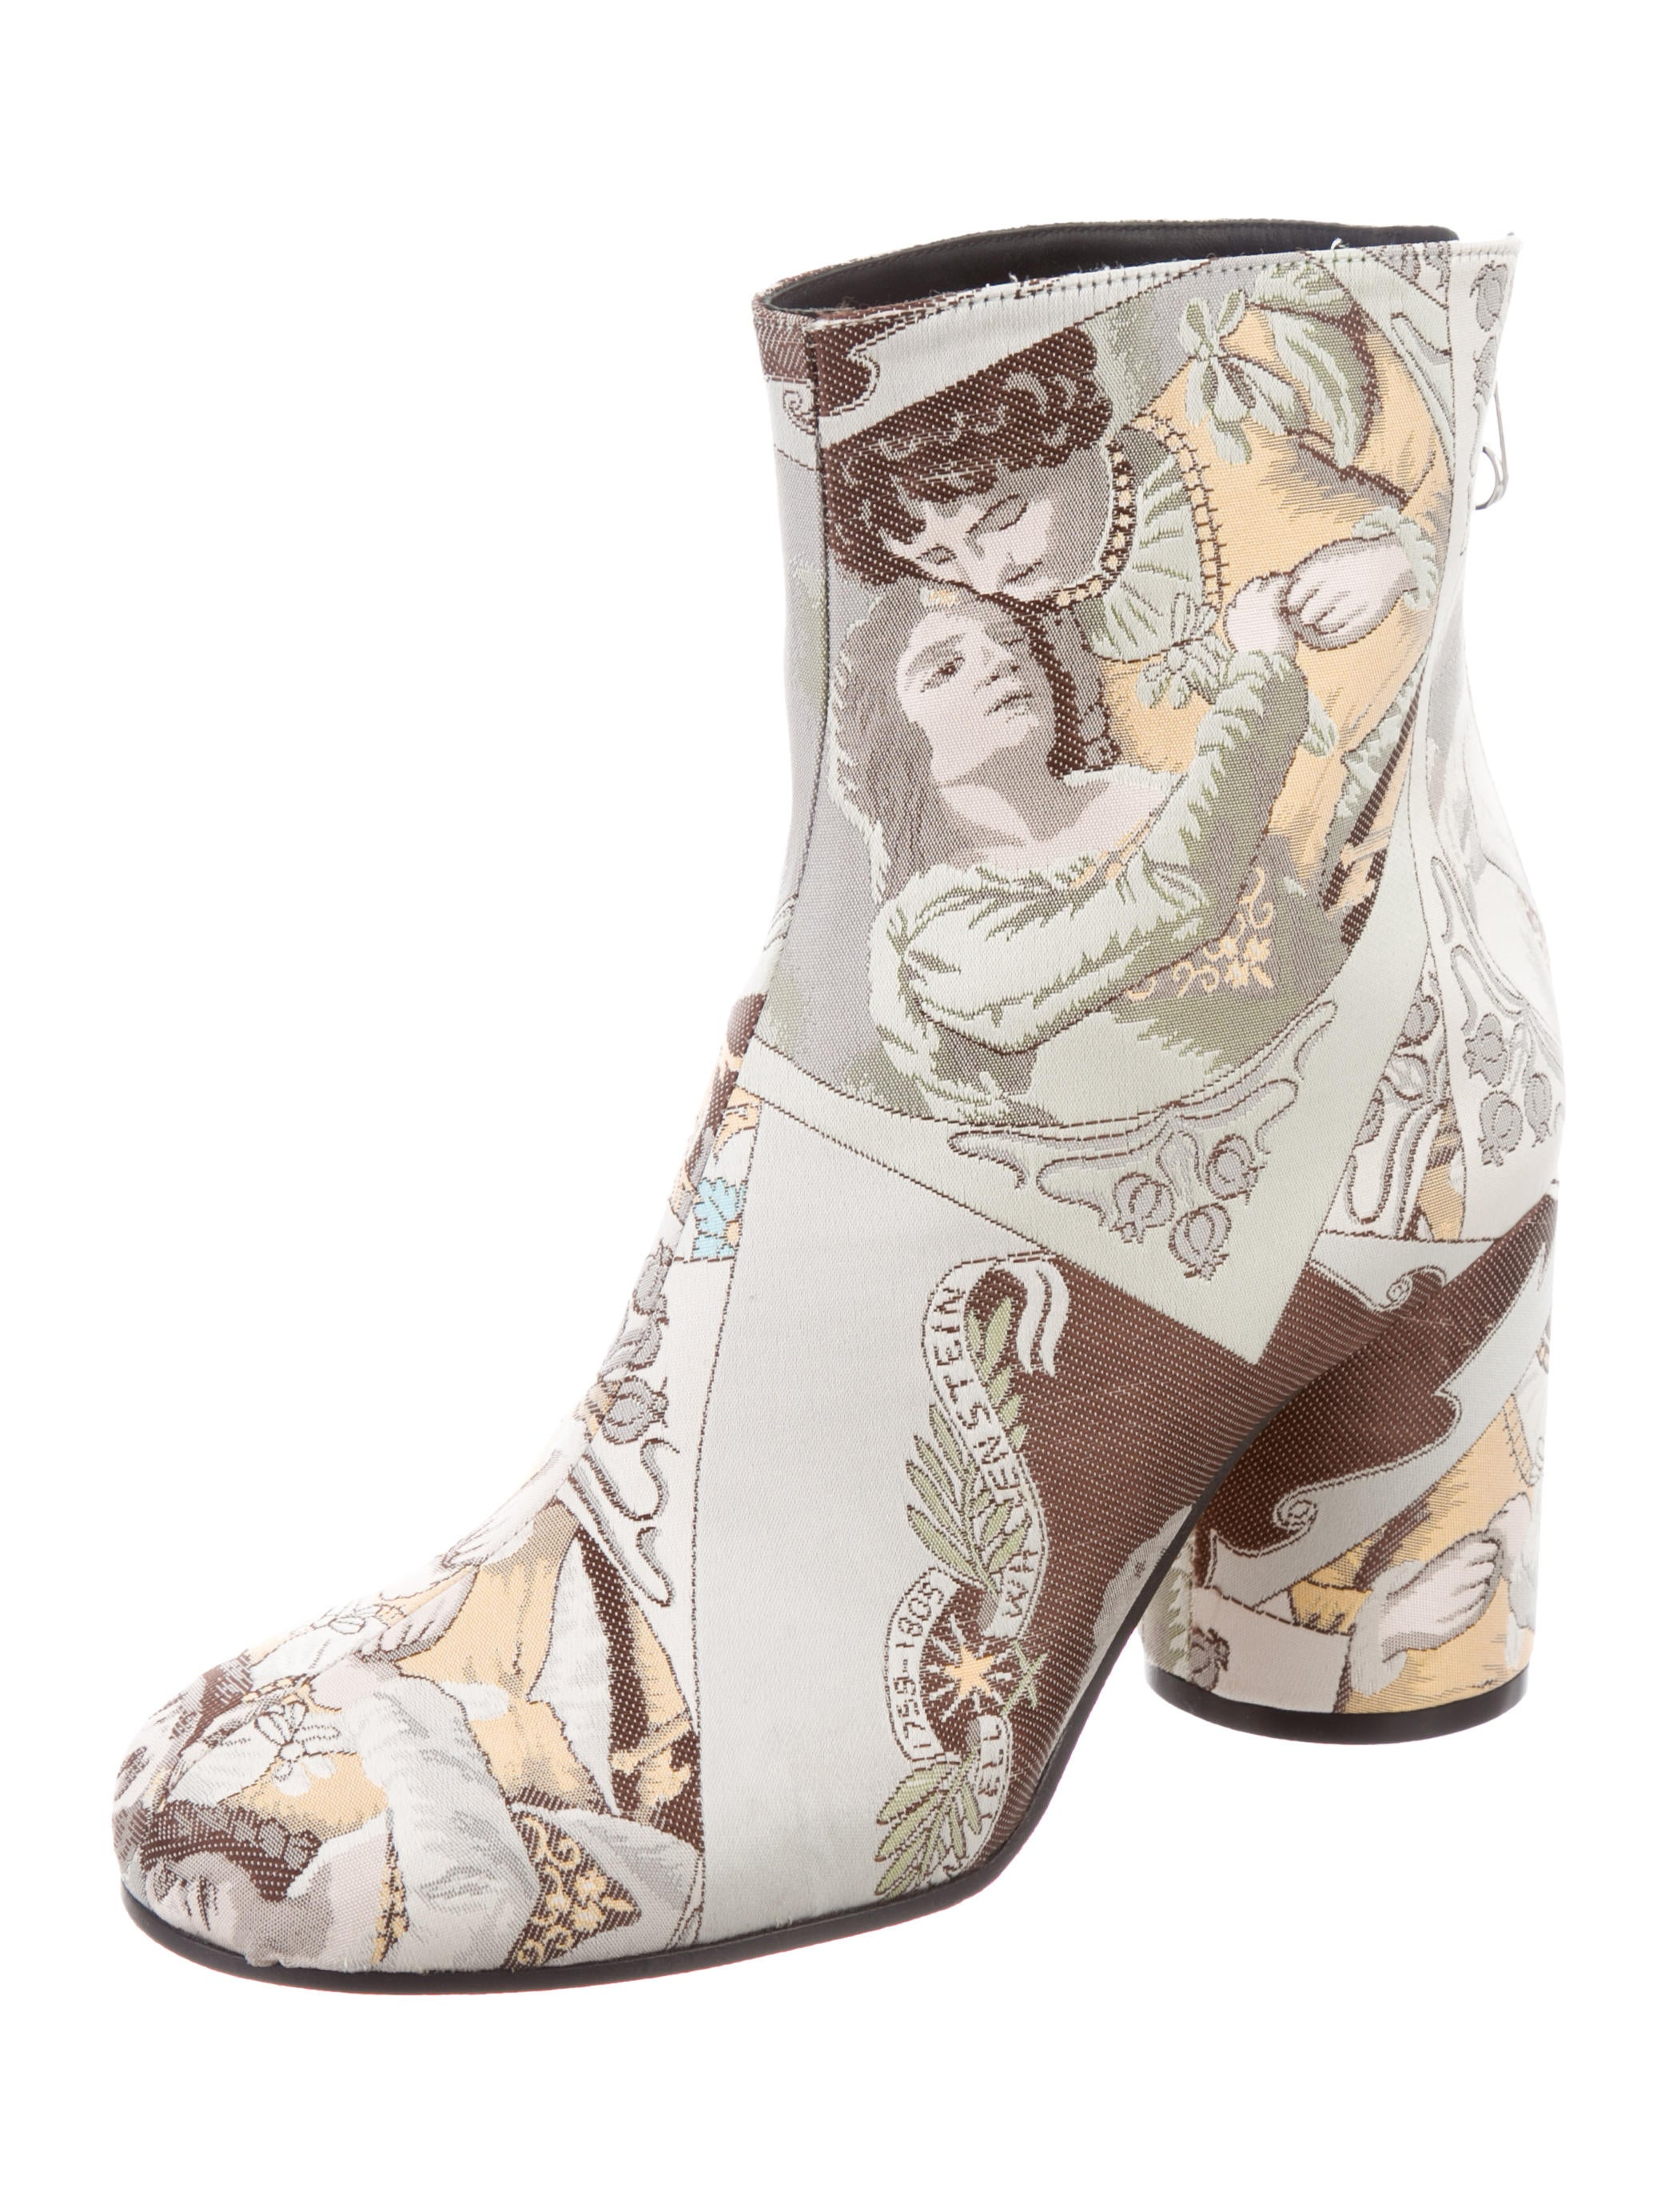 2014 new cheap online discount latest collections Maison Margiela Satin Printed Ankle Boots w/ Tags buy cheap new styles newest cheap online limited edition cheap online LOZpv36